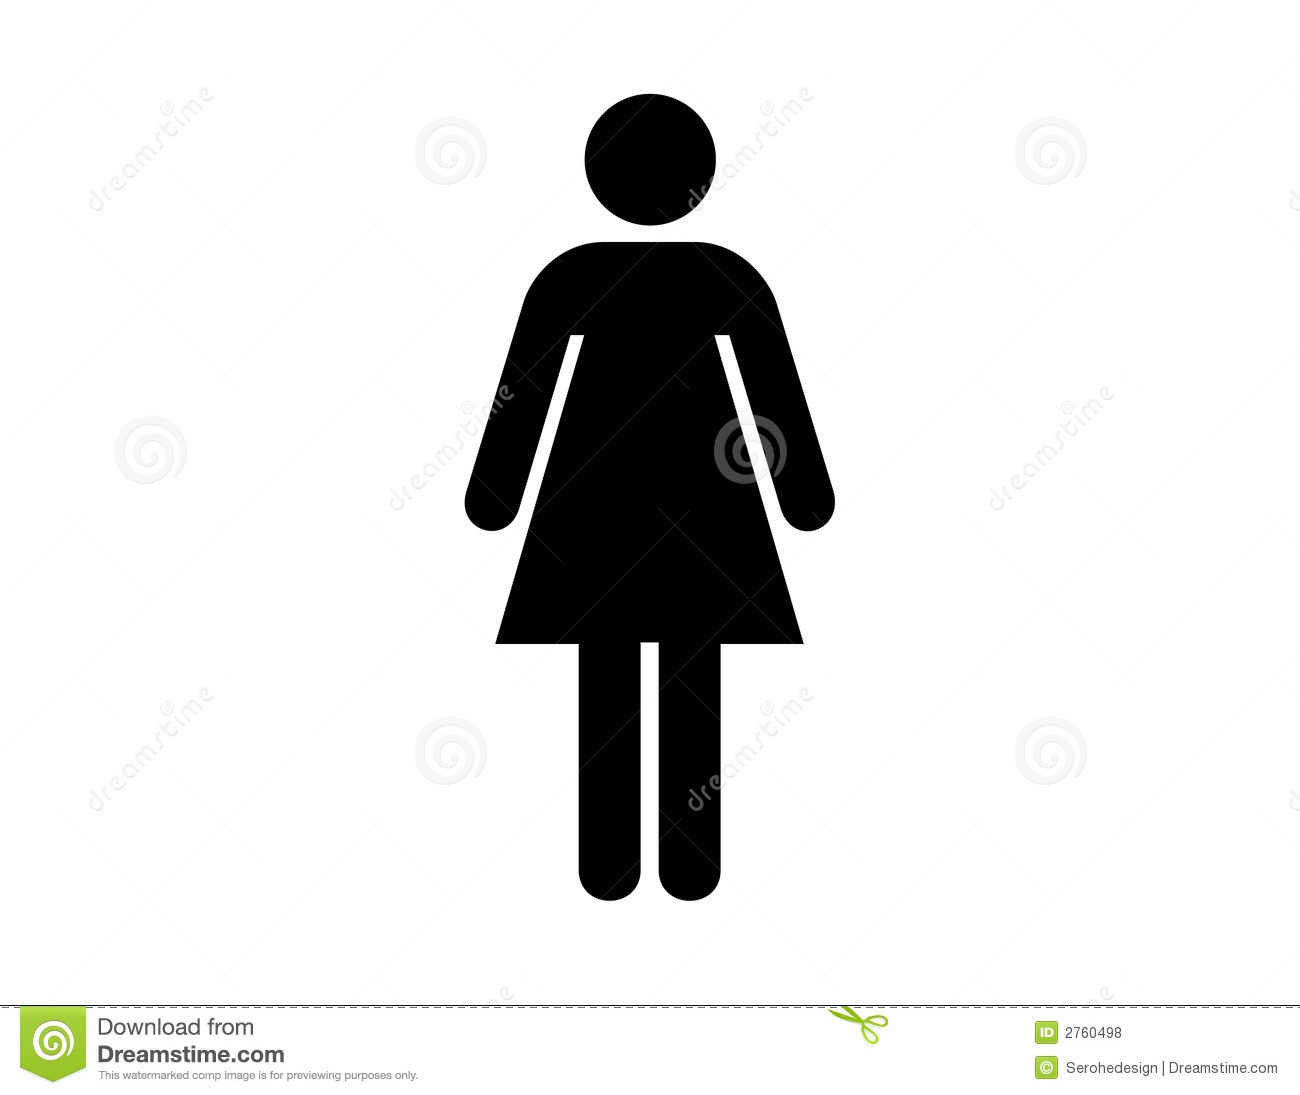 Toilets Women Stock Vector. Illustration Of Signal, Girl